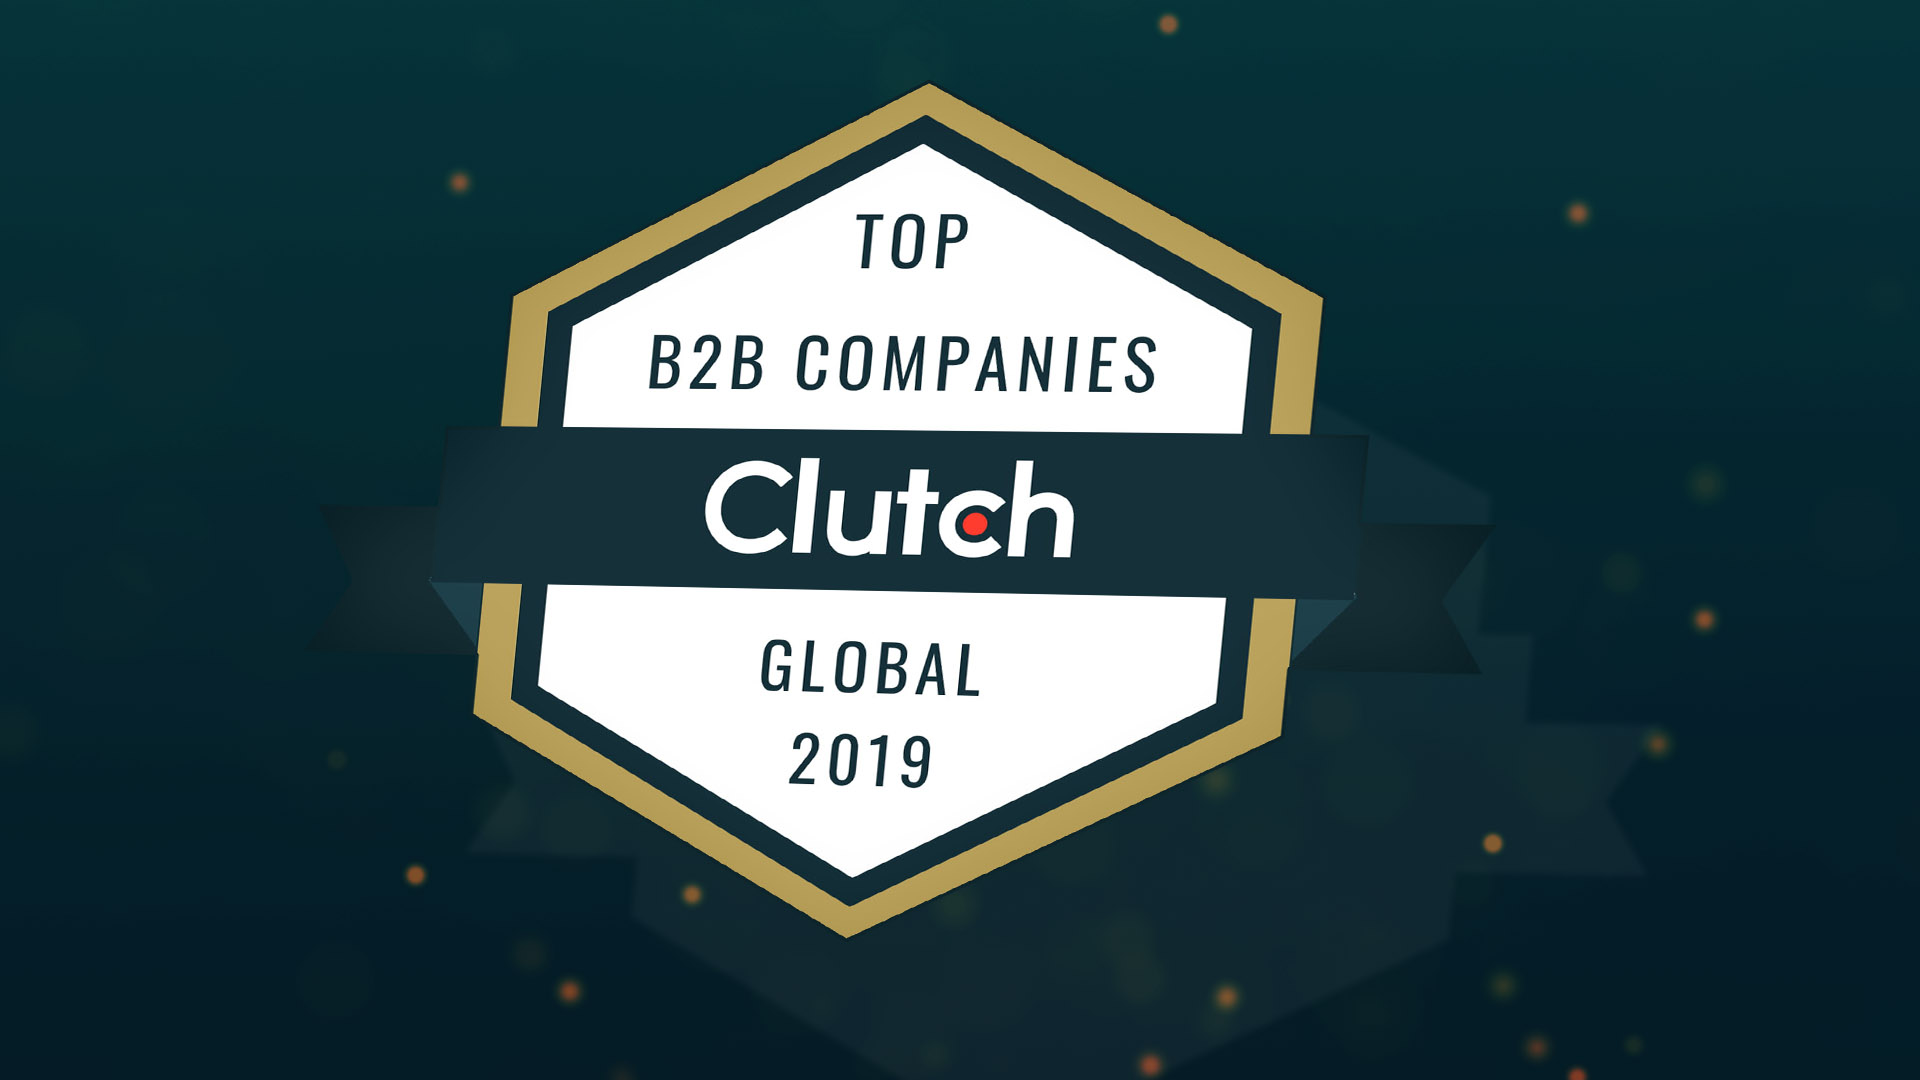 Clutch Global Leader